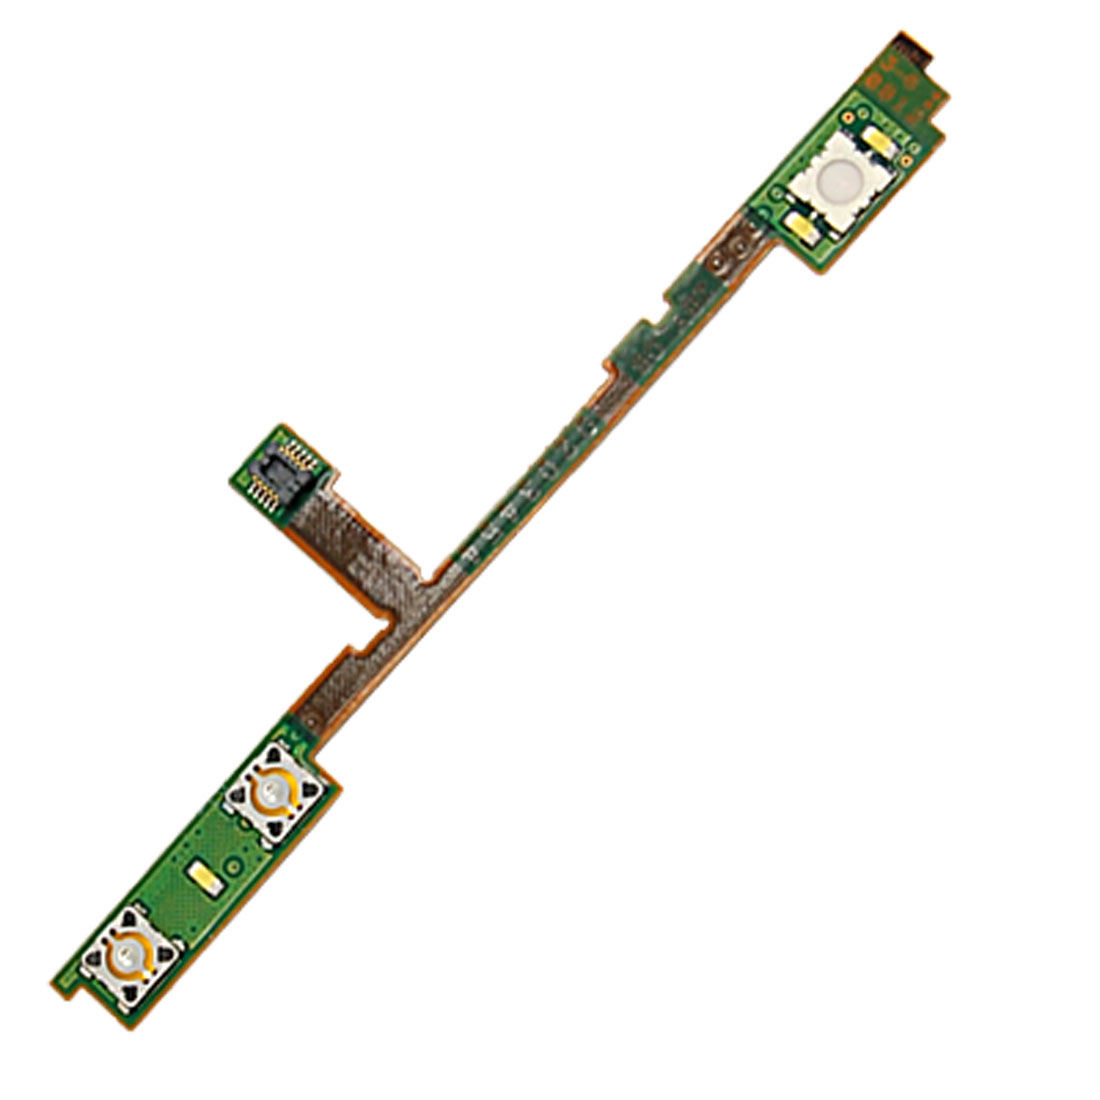 Flex Ribbon Cable Volume Part for Nokia N78